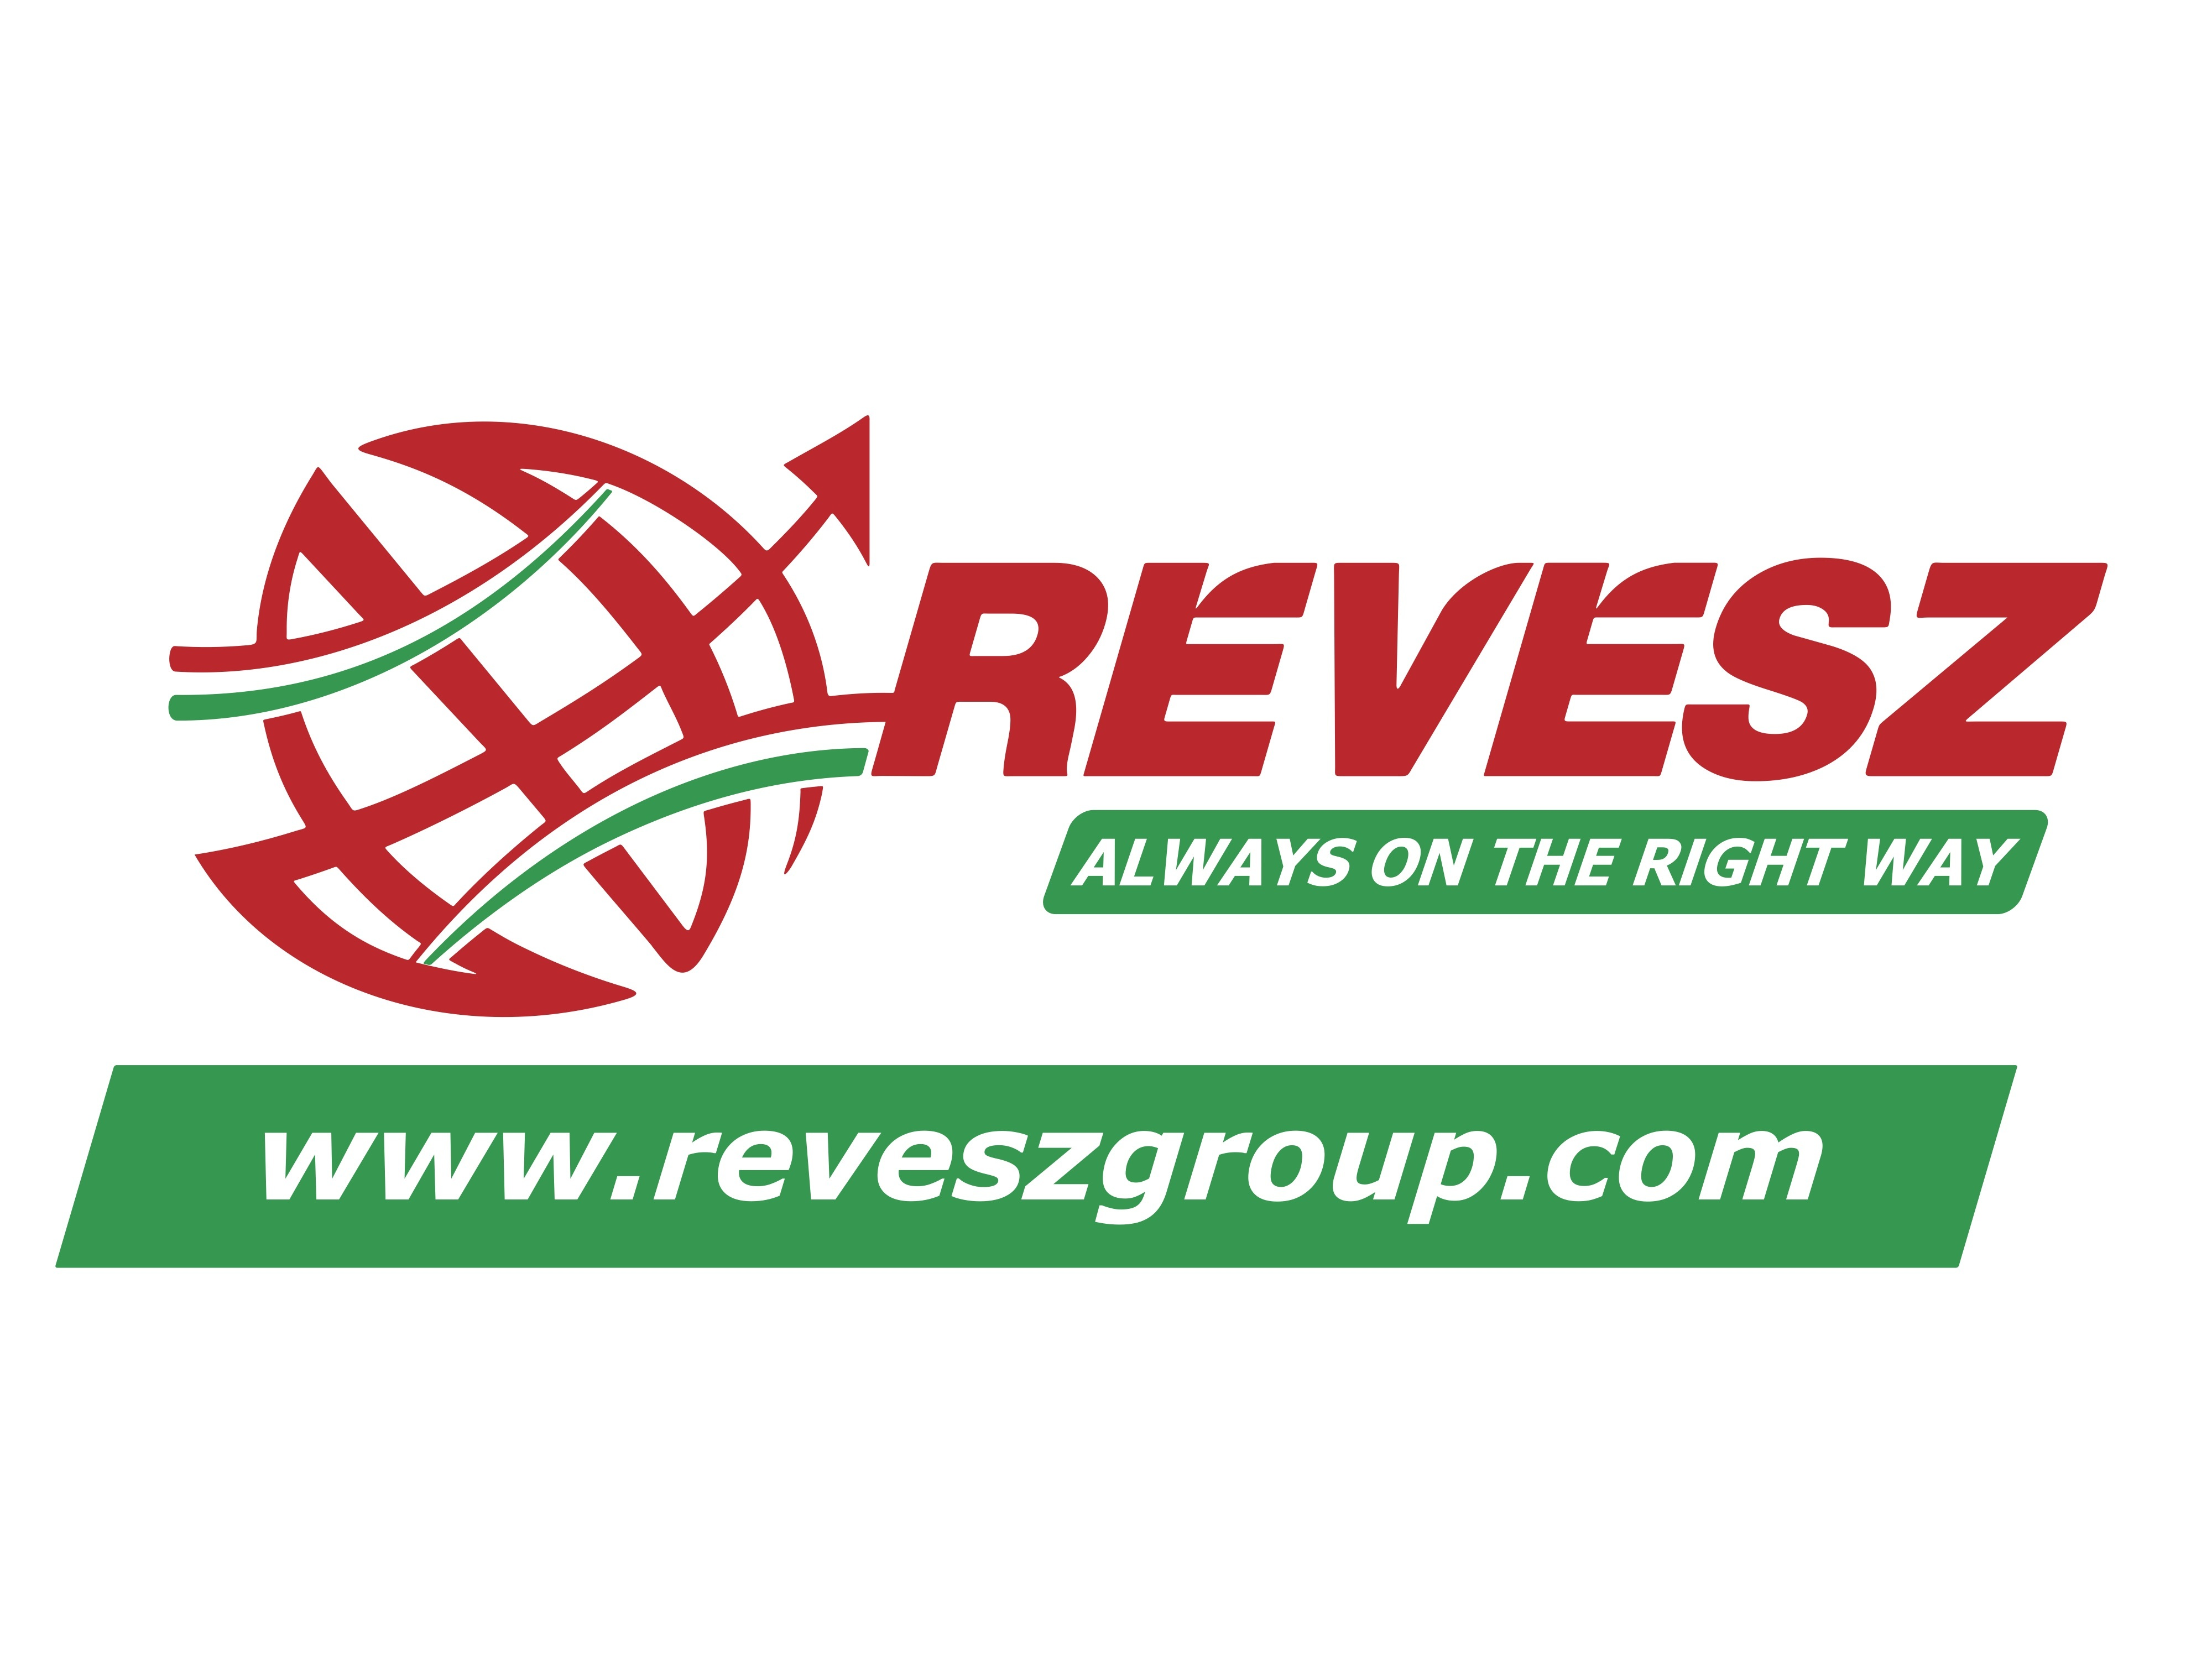 Révész Group